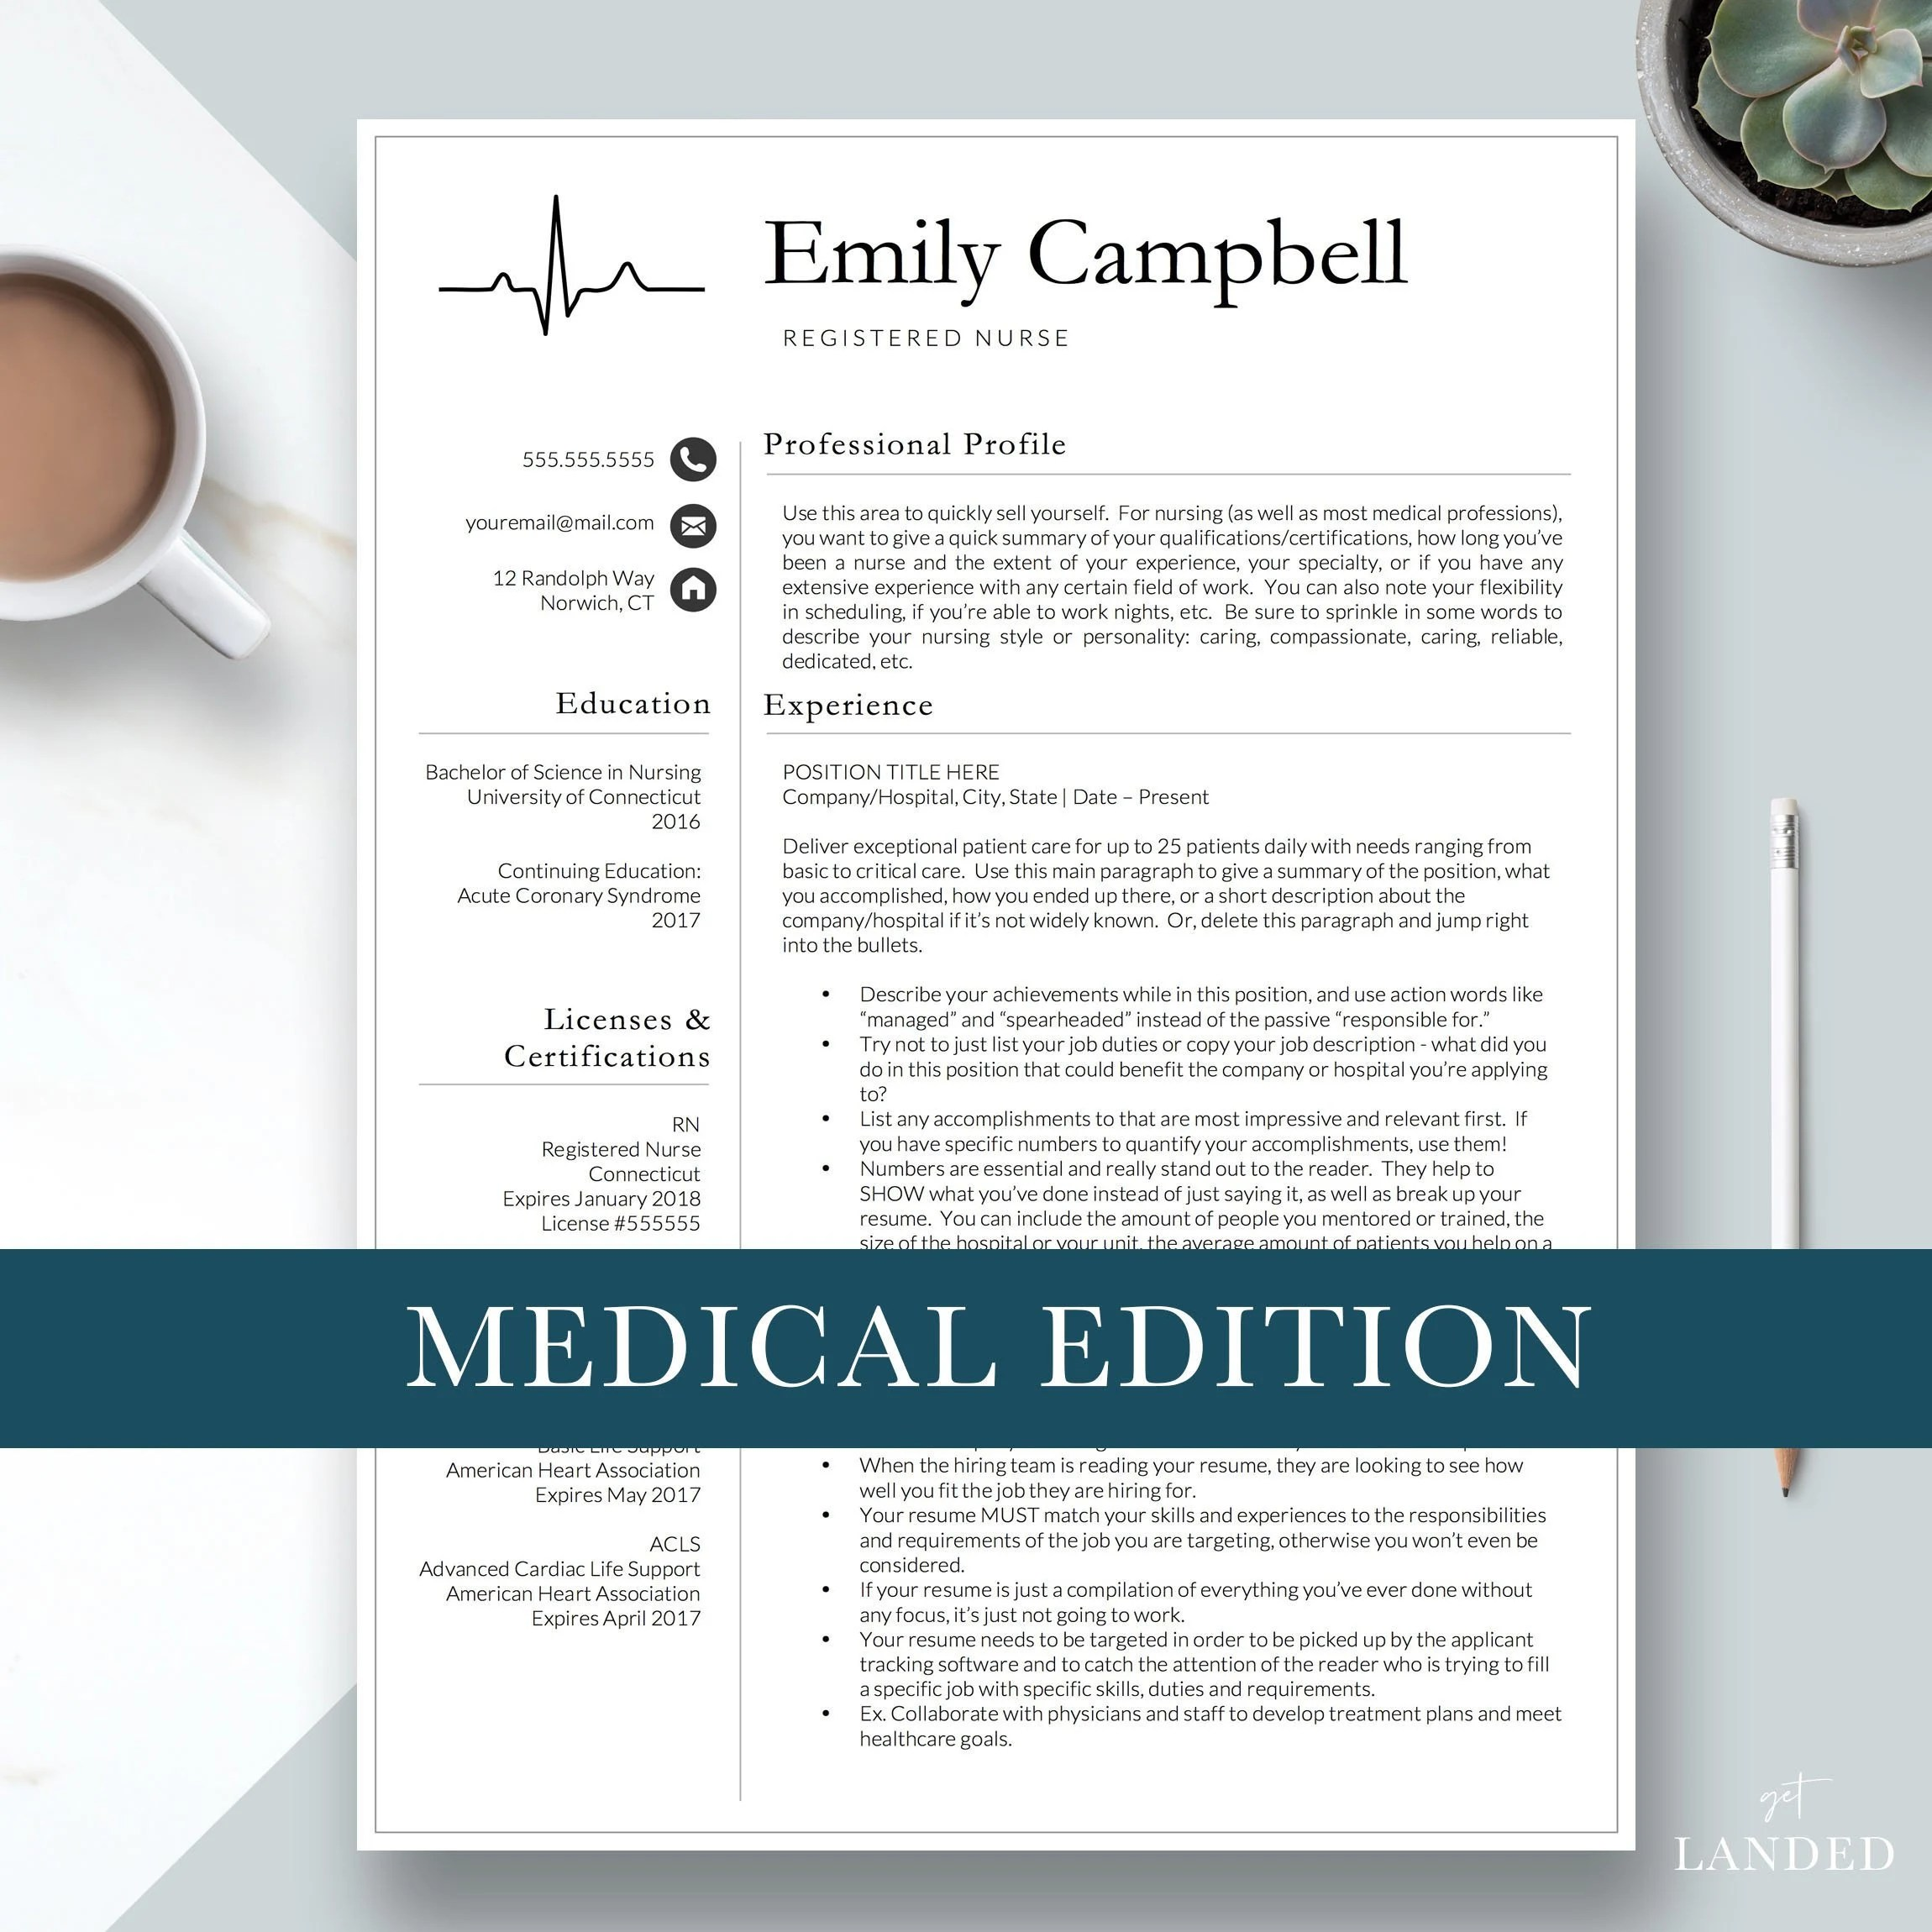 Nursing Resume Template / CV for Nursing Student Nurse Etsy